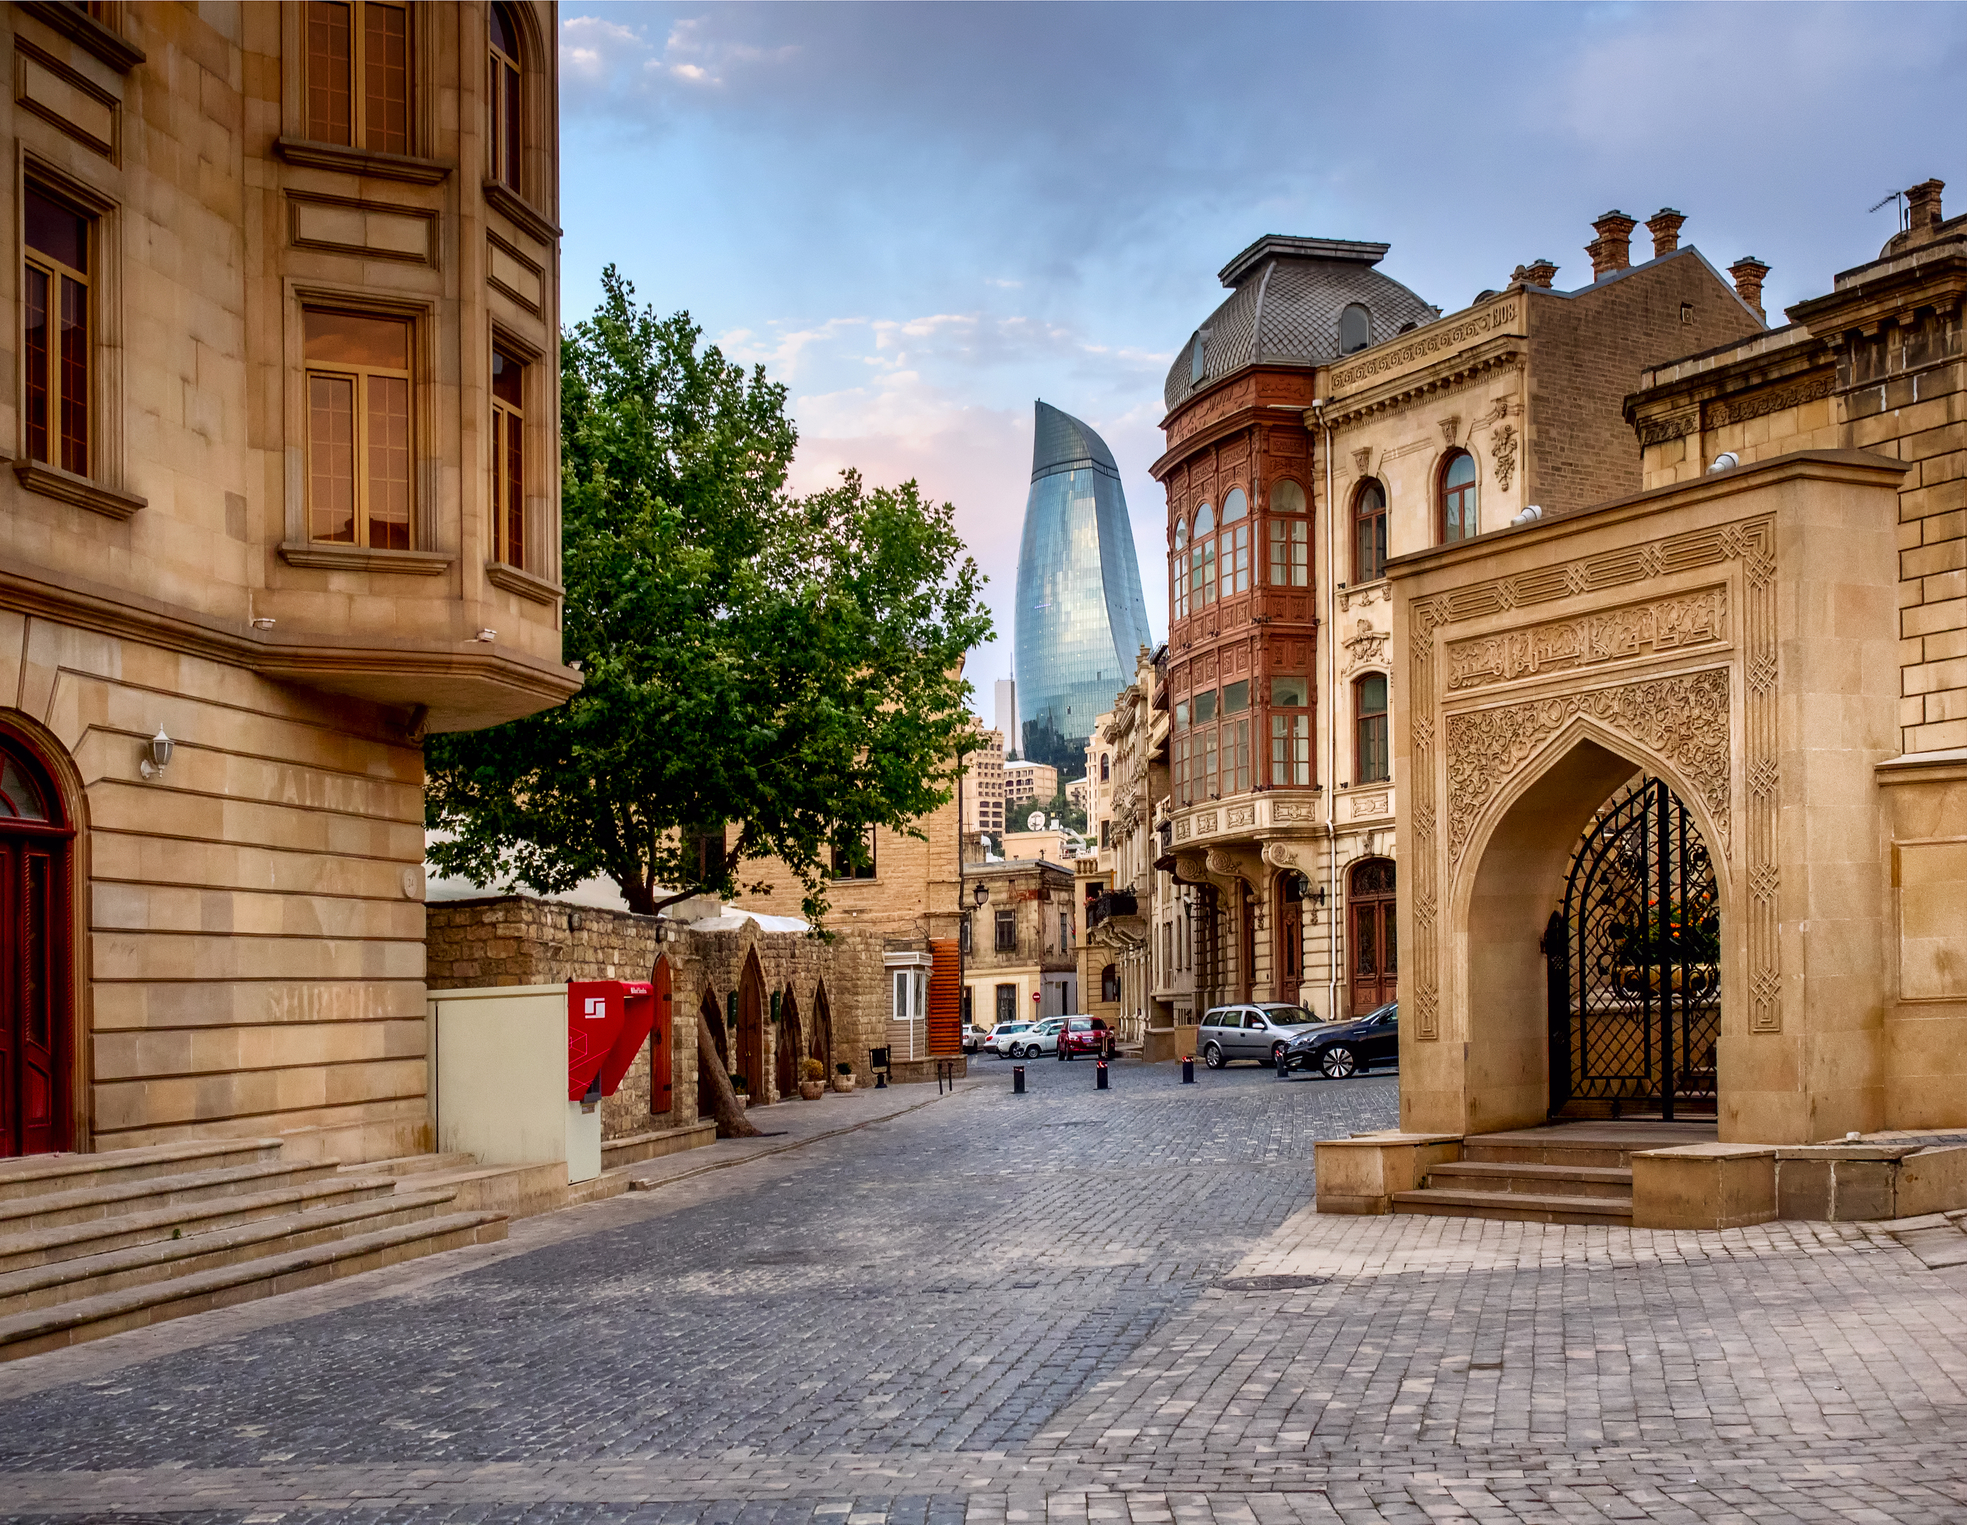 BAKU, AZERBAIJAN - JULY 24 Icheri Sheher (Old Town) of Baku, Azerbaijan, on July 24, 2014, with great modern architecture (DT)